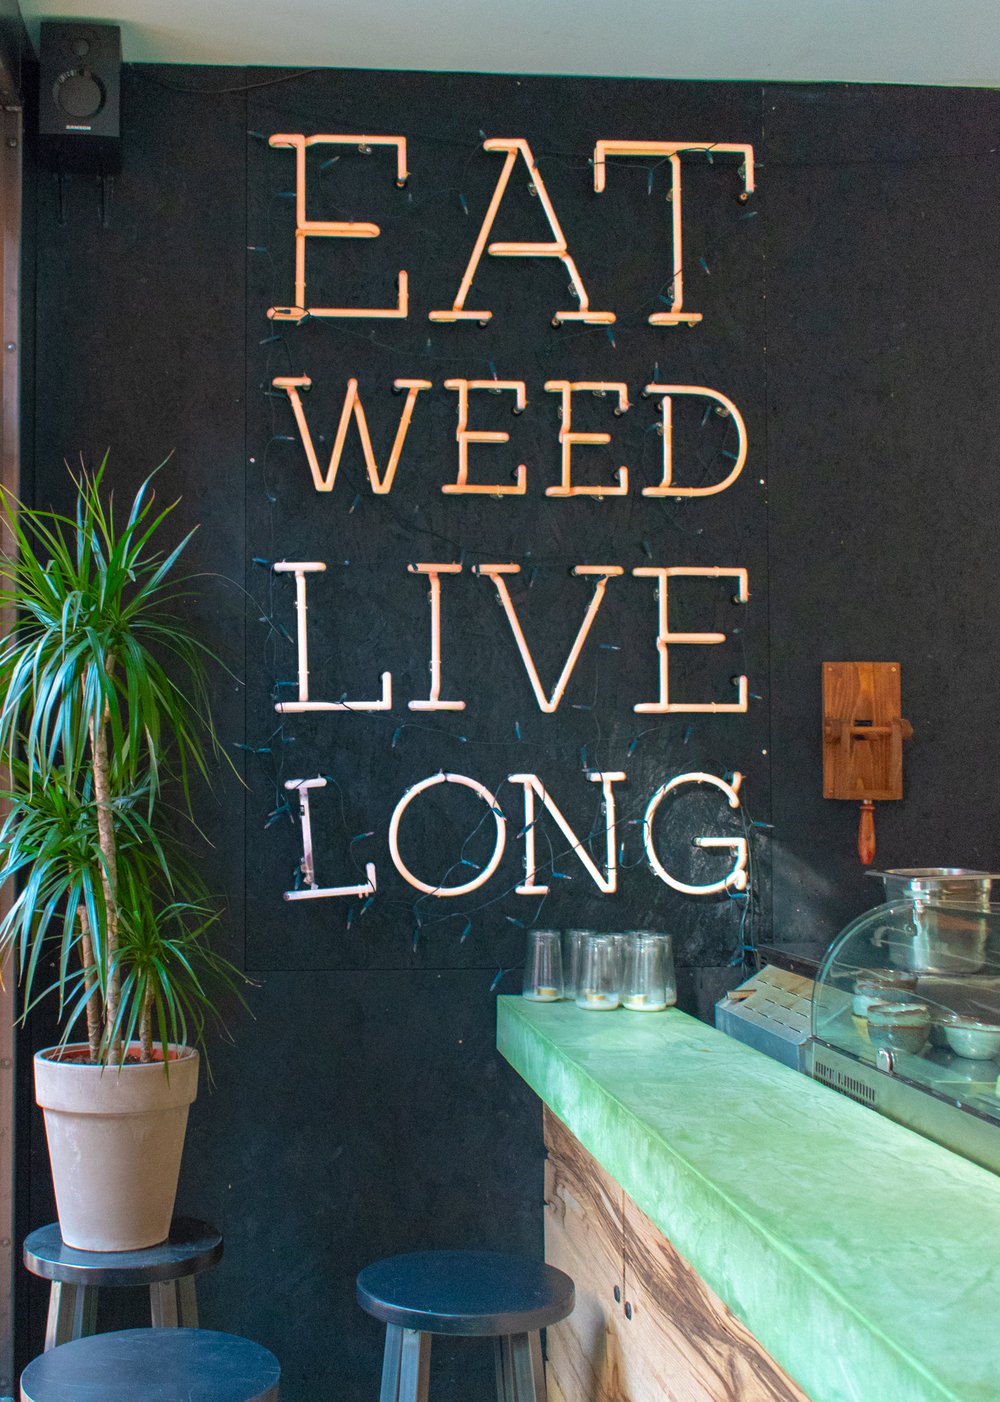 Uprooted-Traveler-Amsterdam-dutch-weed-burger-joint-live-long-seaweed-vegan-guide.jpg